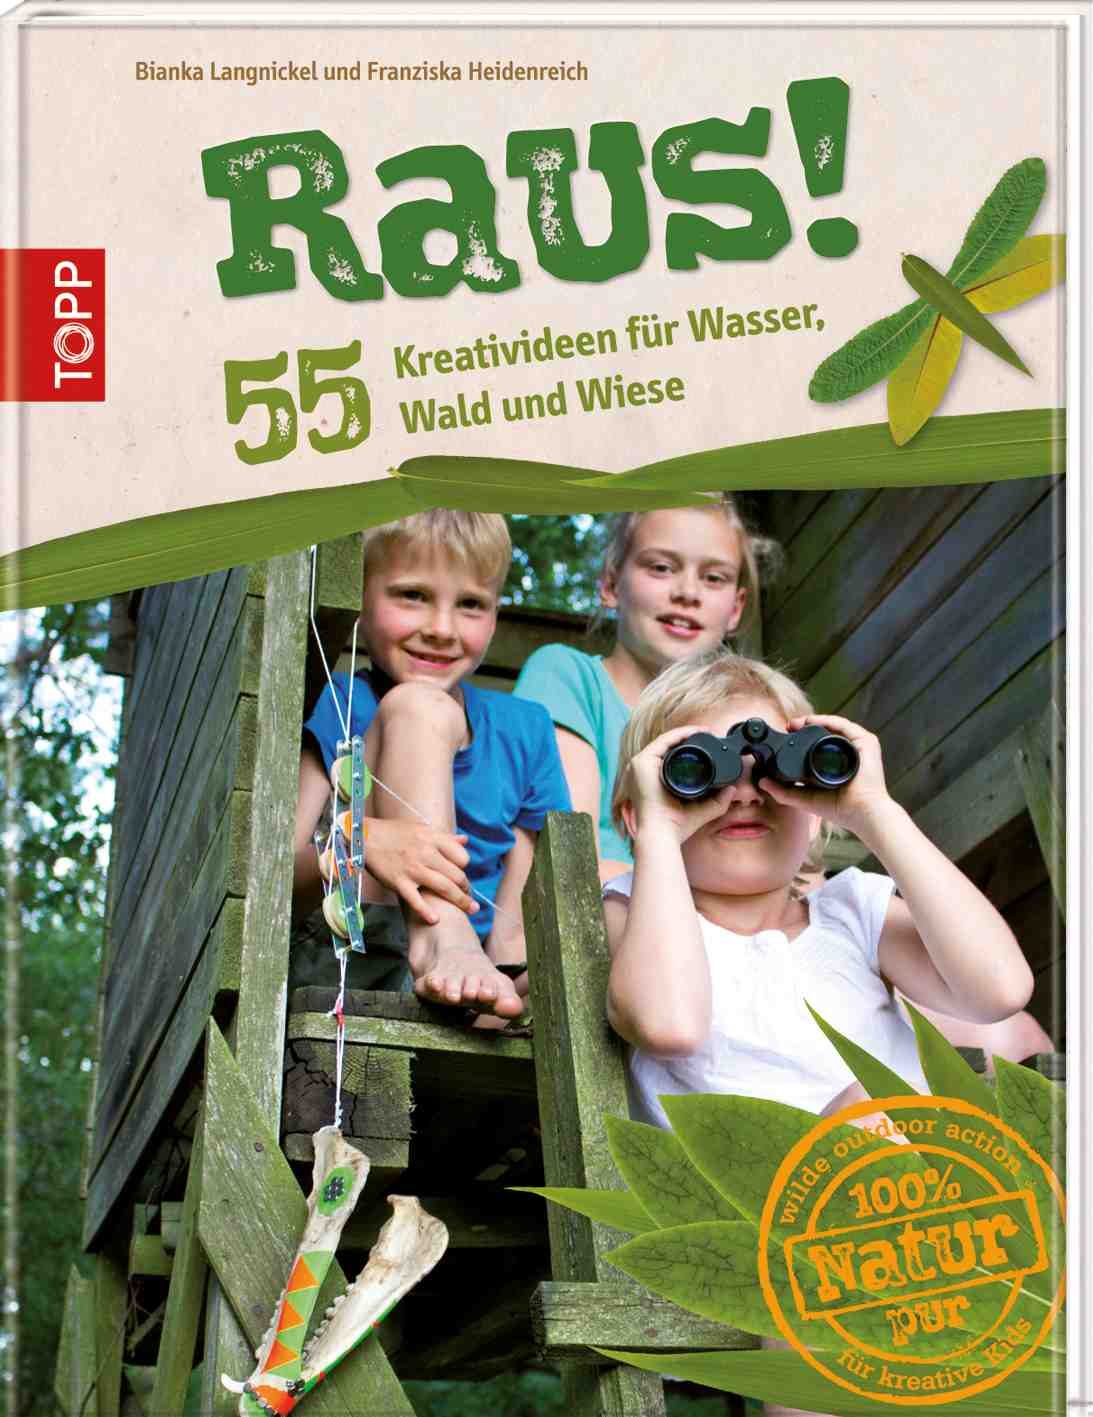 Outdoor Kinder Tolle Ideen Für Outdoor Kinder Raus Das Wilde Outdoor Action